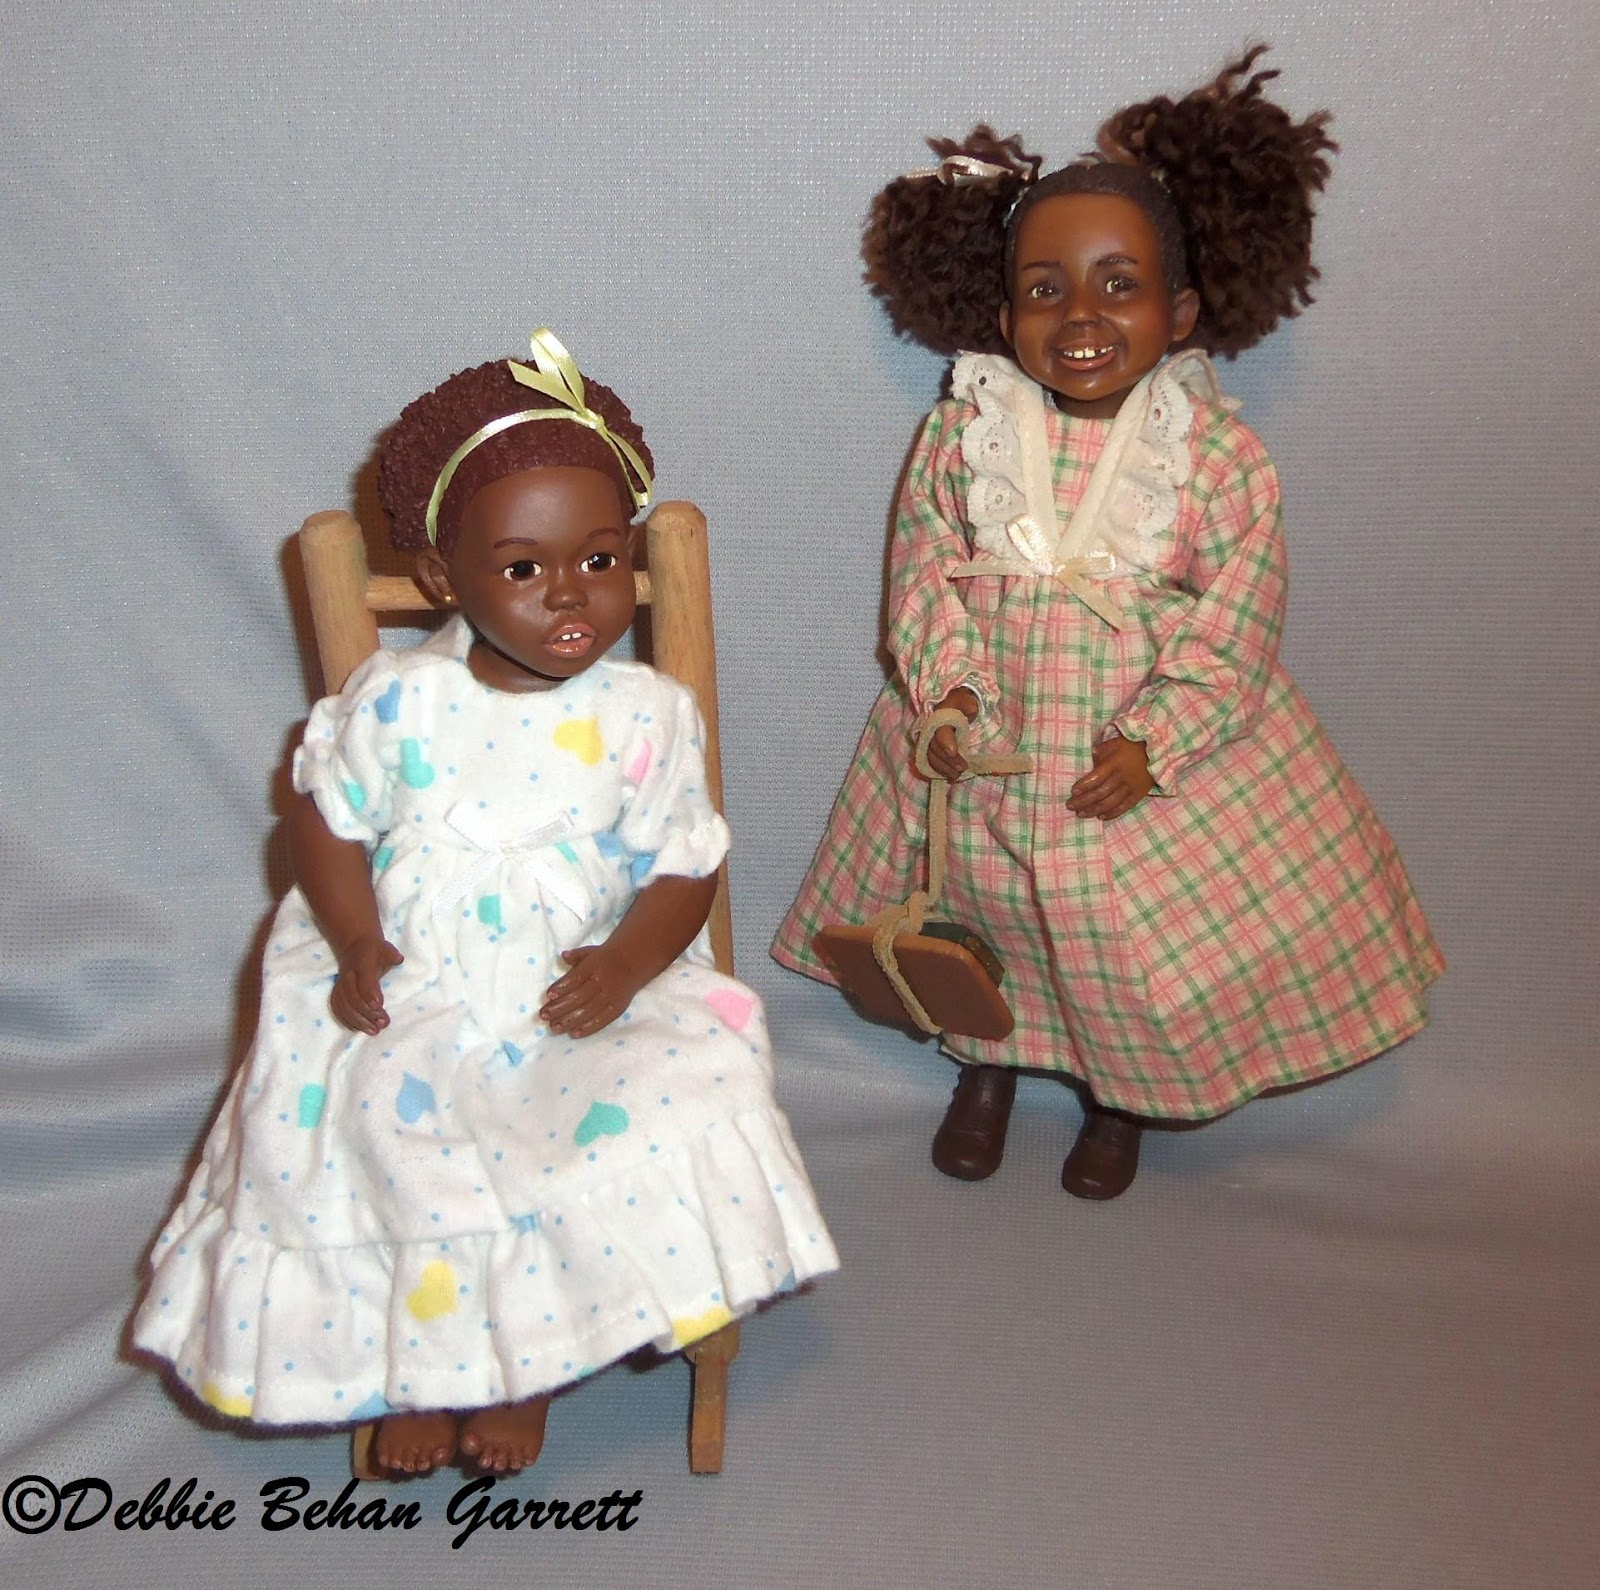 Black Doll Collecting A Doll is an Expression of Art and a Messenger of Love